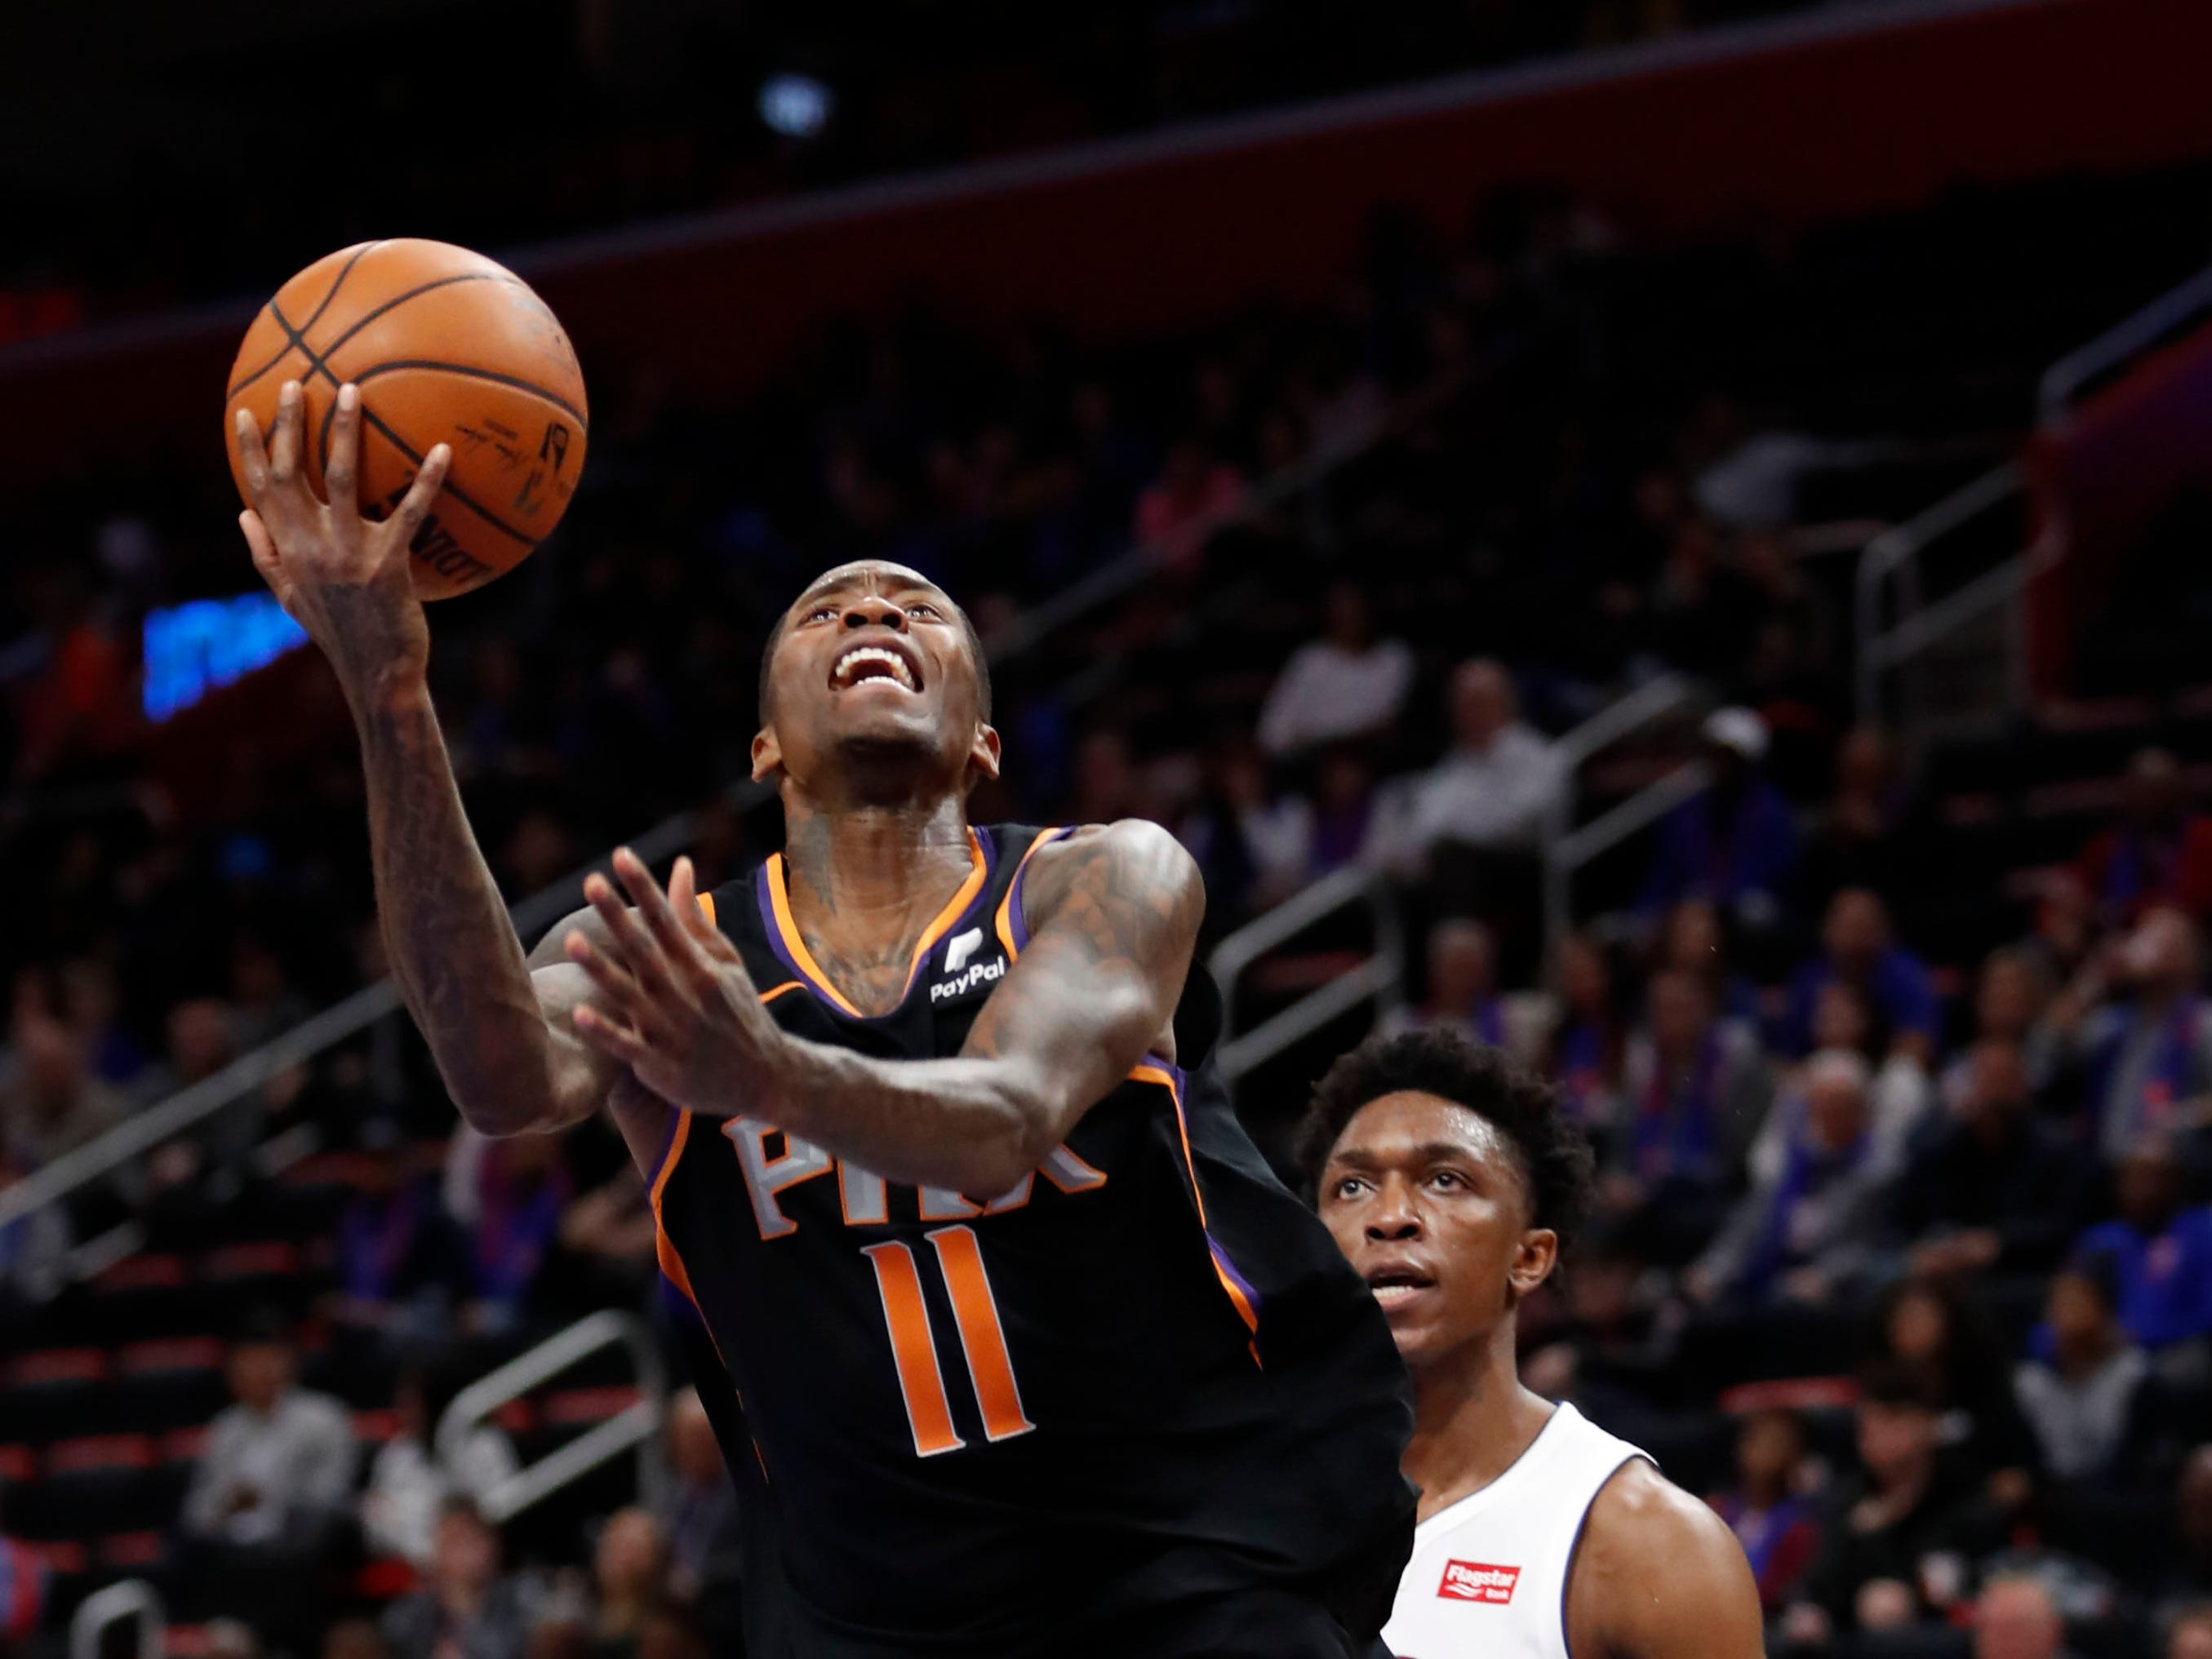 Nov 25, 2018; Detroit, MI, USA; Phoenix Suns guard Jamal Crawford (11) goes up for a shot against Detroit Pistons forward Stanley Johnson (7) during the fourth quarter at Little Caesars Arena. Mandatory Credit: Raj Mehta-USA TODAY Sports